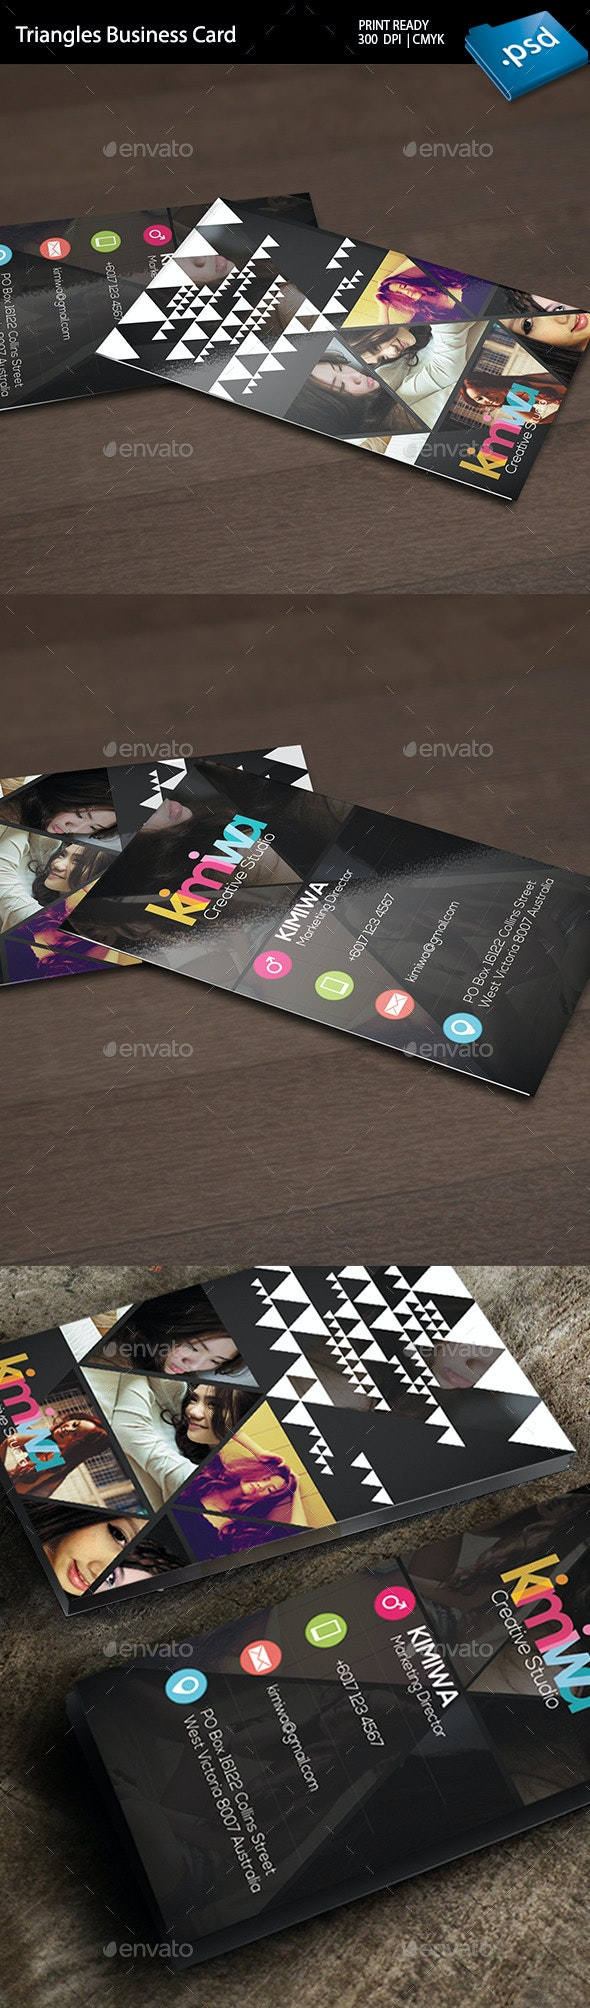 Triangles Business Card  - Creative Business Cards